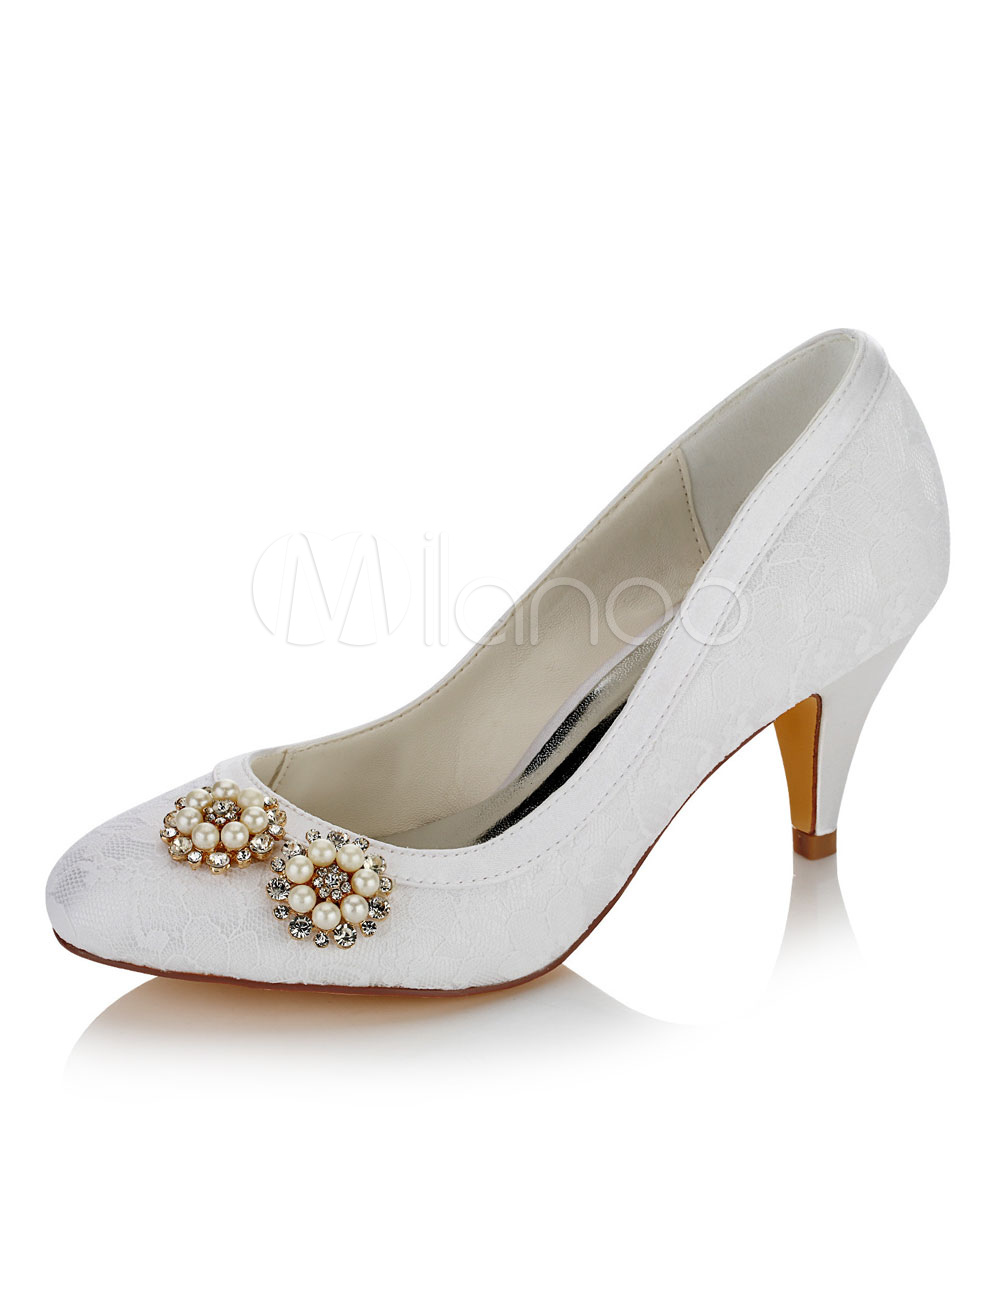 White Wedding Shoes White Round Toe Rhinestones Pearls Detail Slip On Bridal Pumps